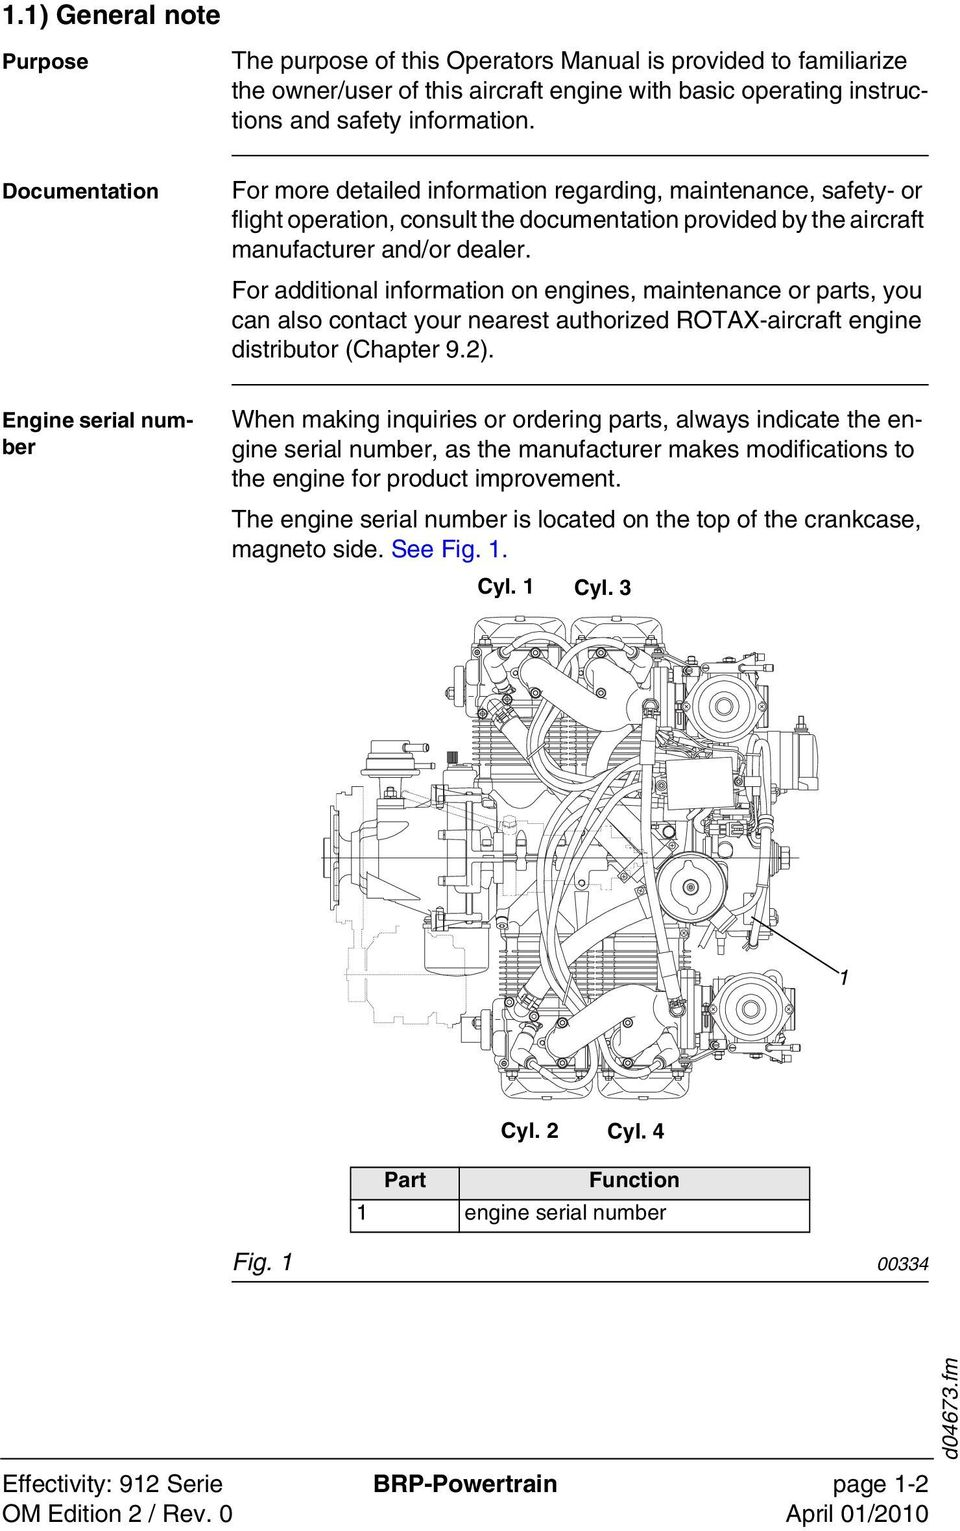 Operators Manual For Rotax Engine Type 912 Series Pdf Motorcycle Diagram Clutch Additional Information On Engines Maintenance Or Parts You Can Also Contact Your Nearest